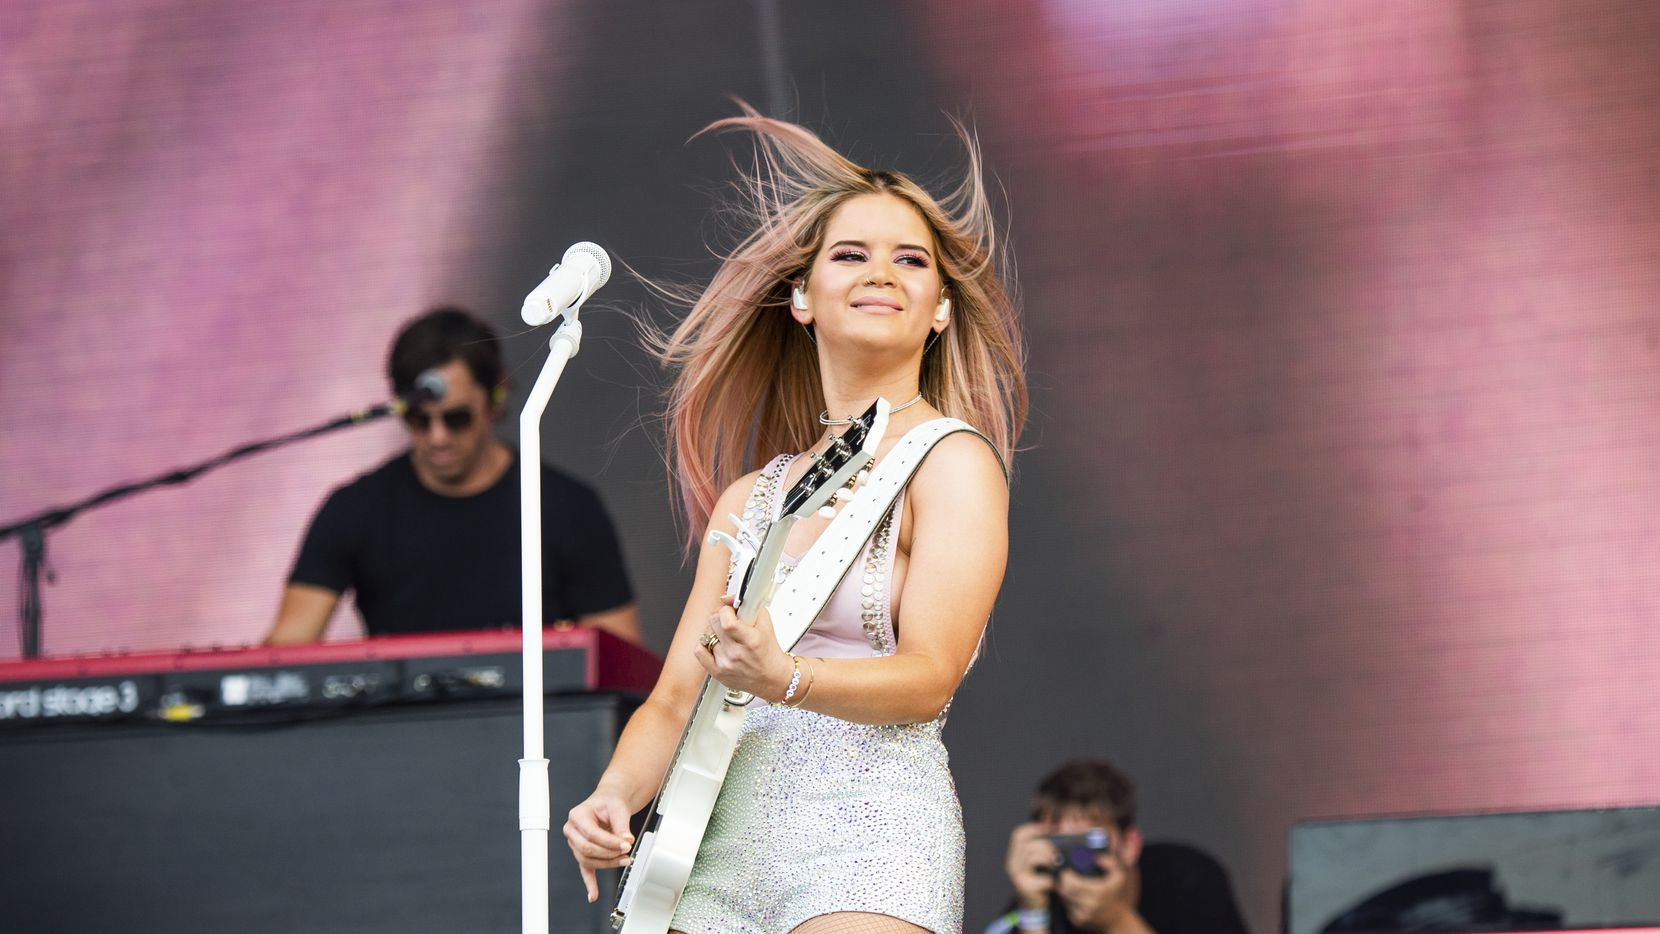 This June 15, 2019 file photo shows Maren Morris performing at the Bonnaroo Music and Arts Festival in Manchester, Tenn.